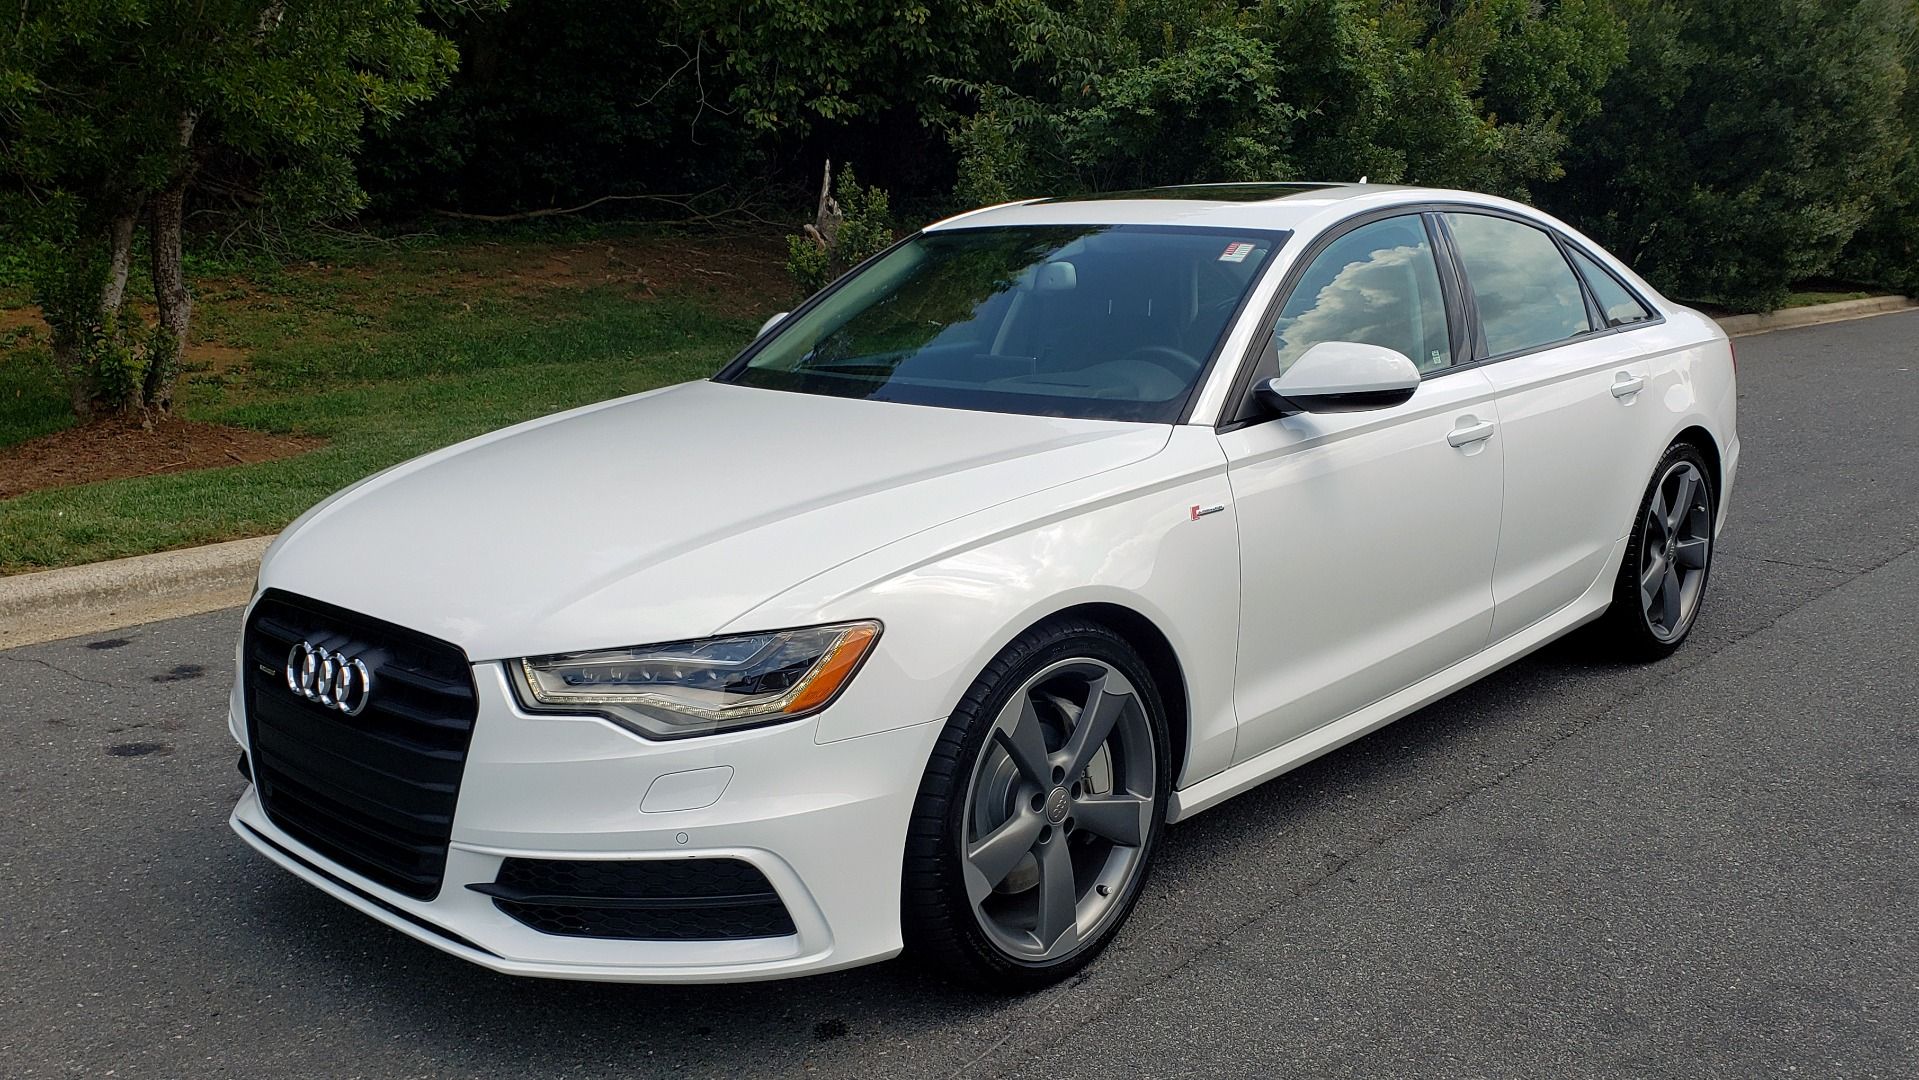 Used 2015 Audi A6 3.0T PRESTIGE / BLACK OPTIC / NAV / BOSE / SUNROOF / REARVIEW for sale Sold at Formula Imports in Charlotte NC 28227 3